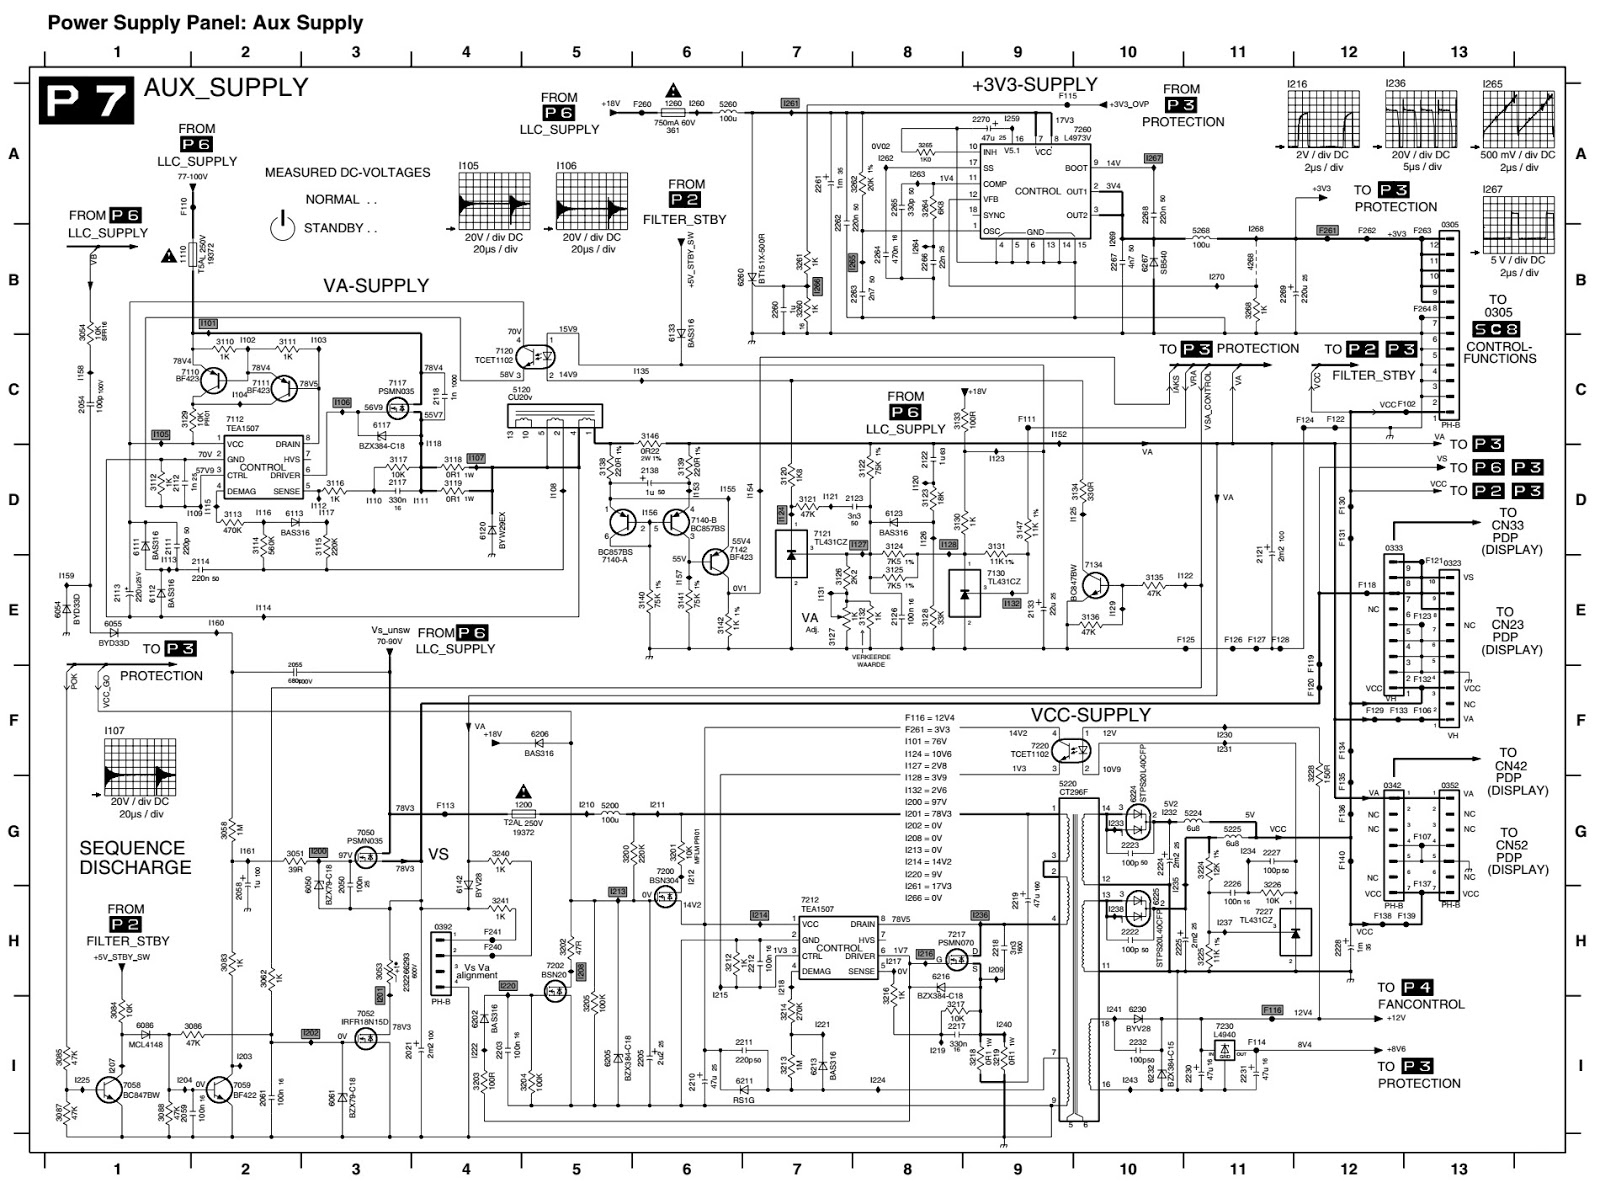 Touch to see the main digital board circuit diagram >>